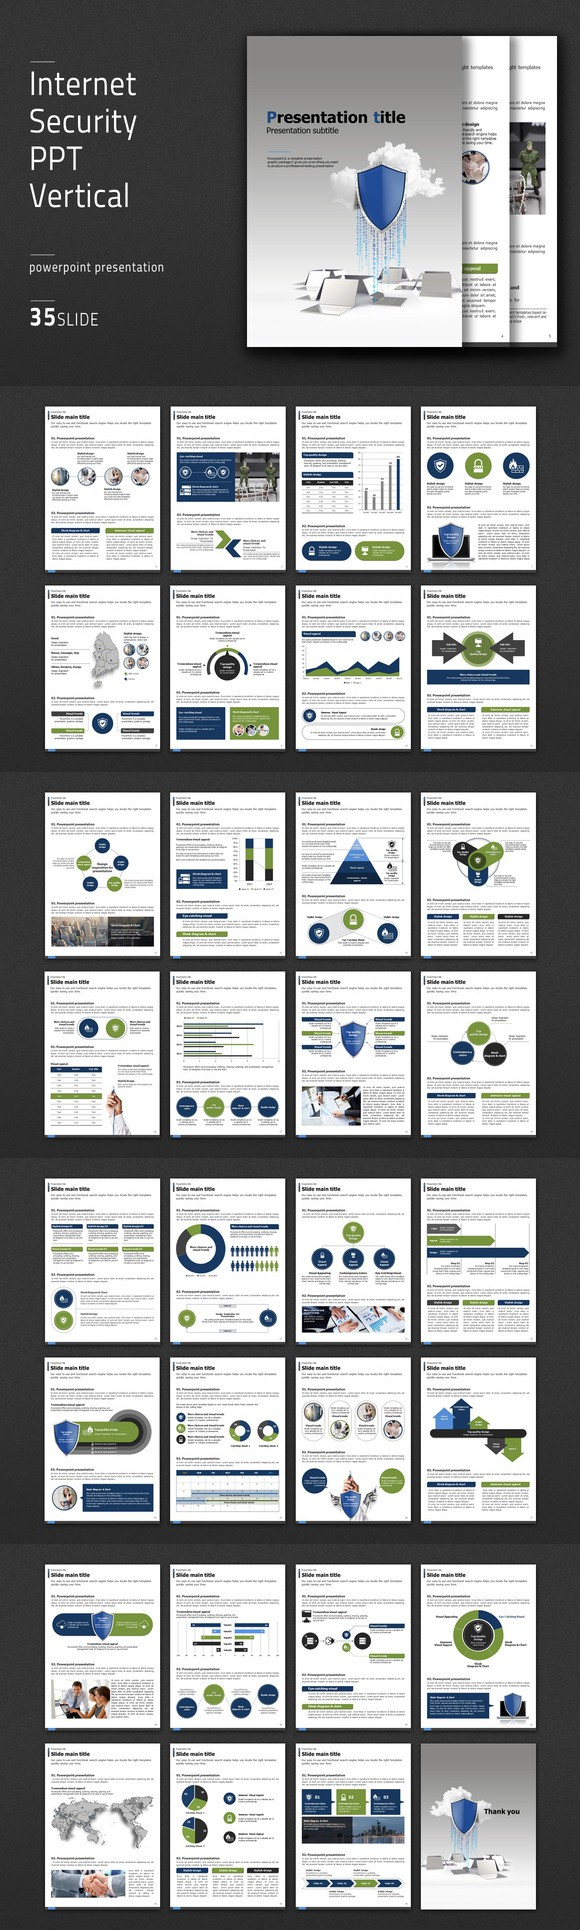 internet security ppt vertical. presentation templates. $41.00, Powerpoint templates